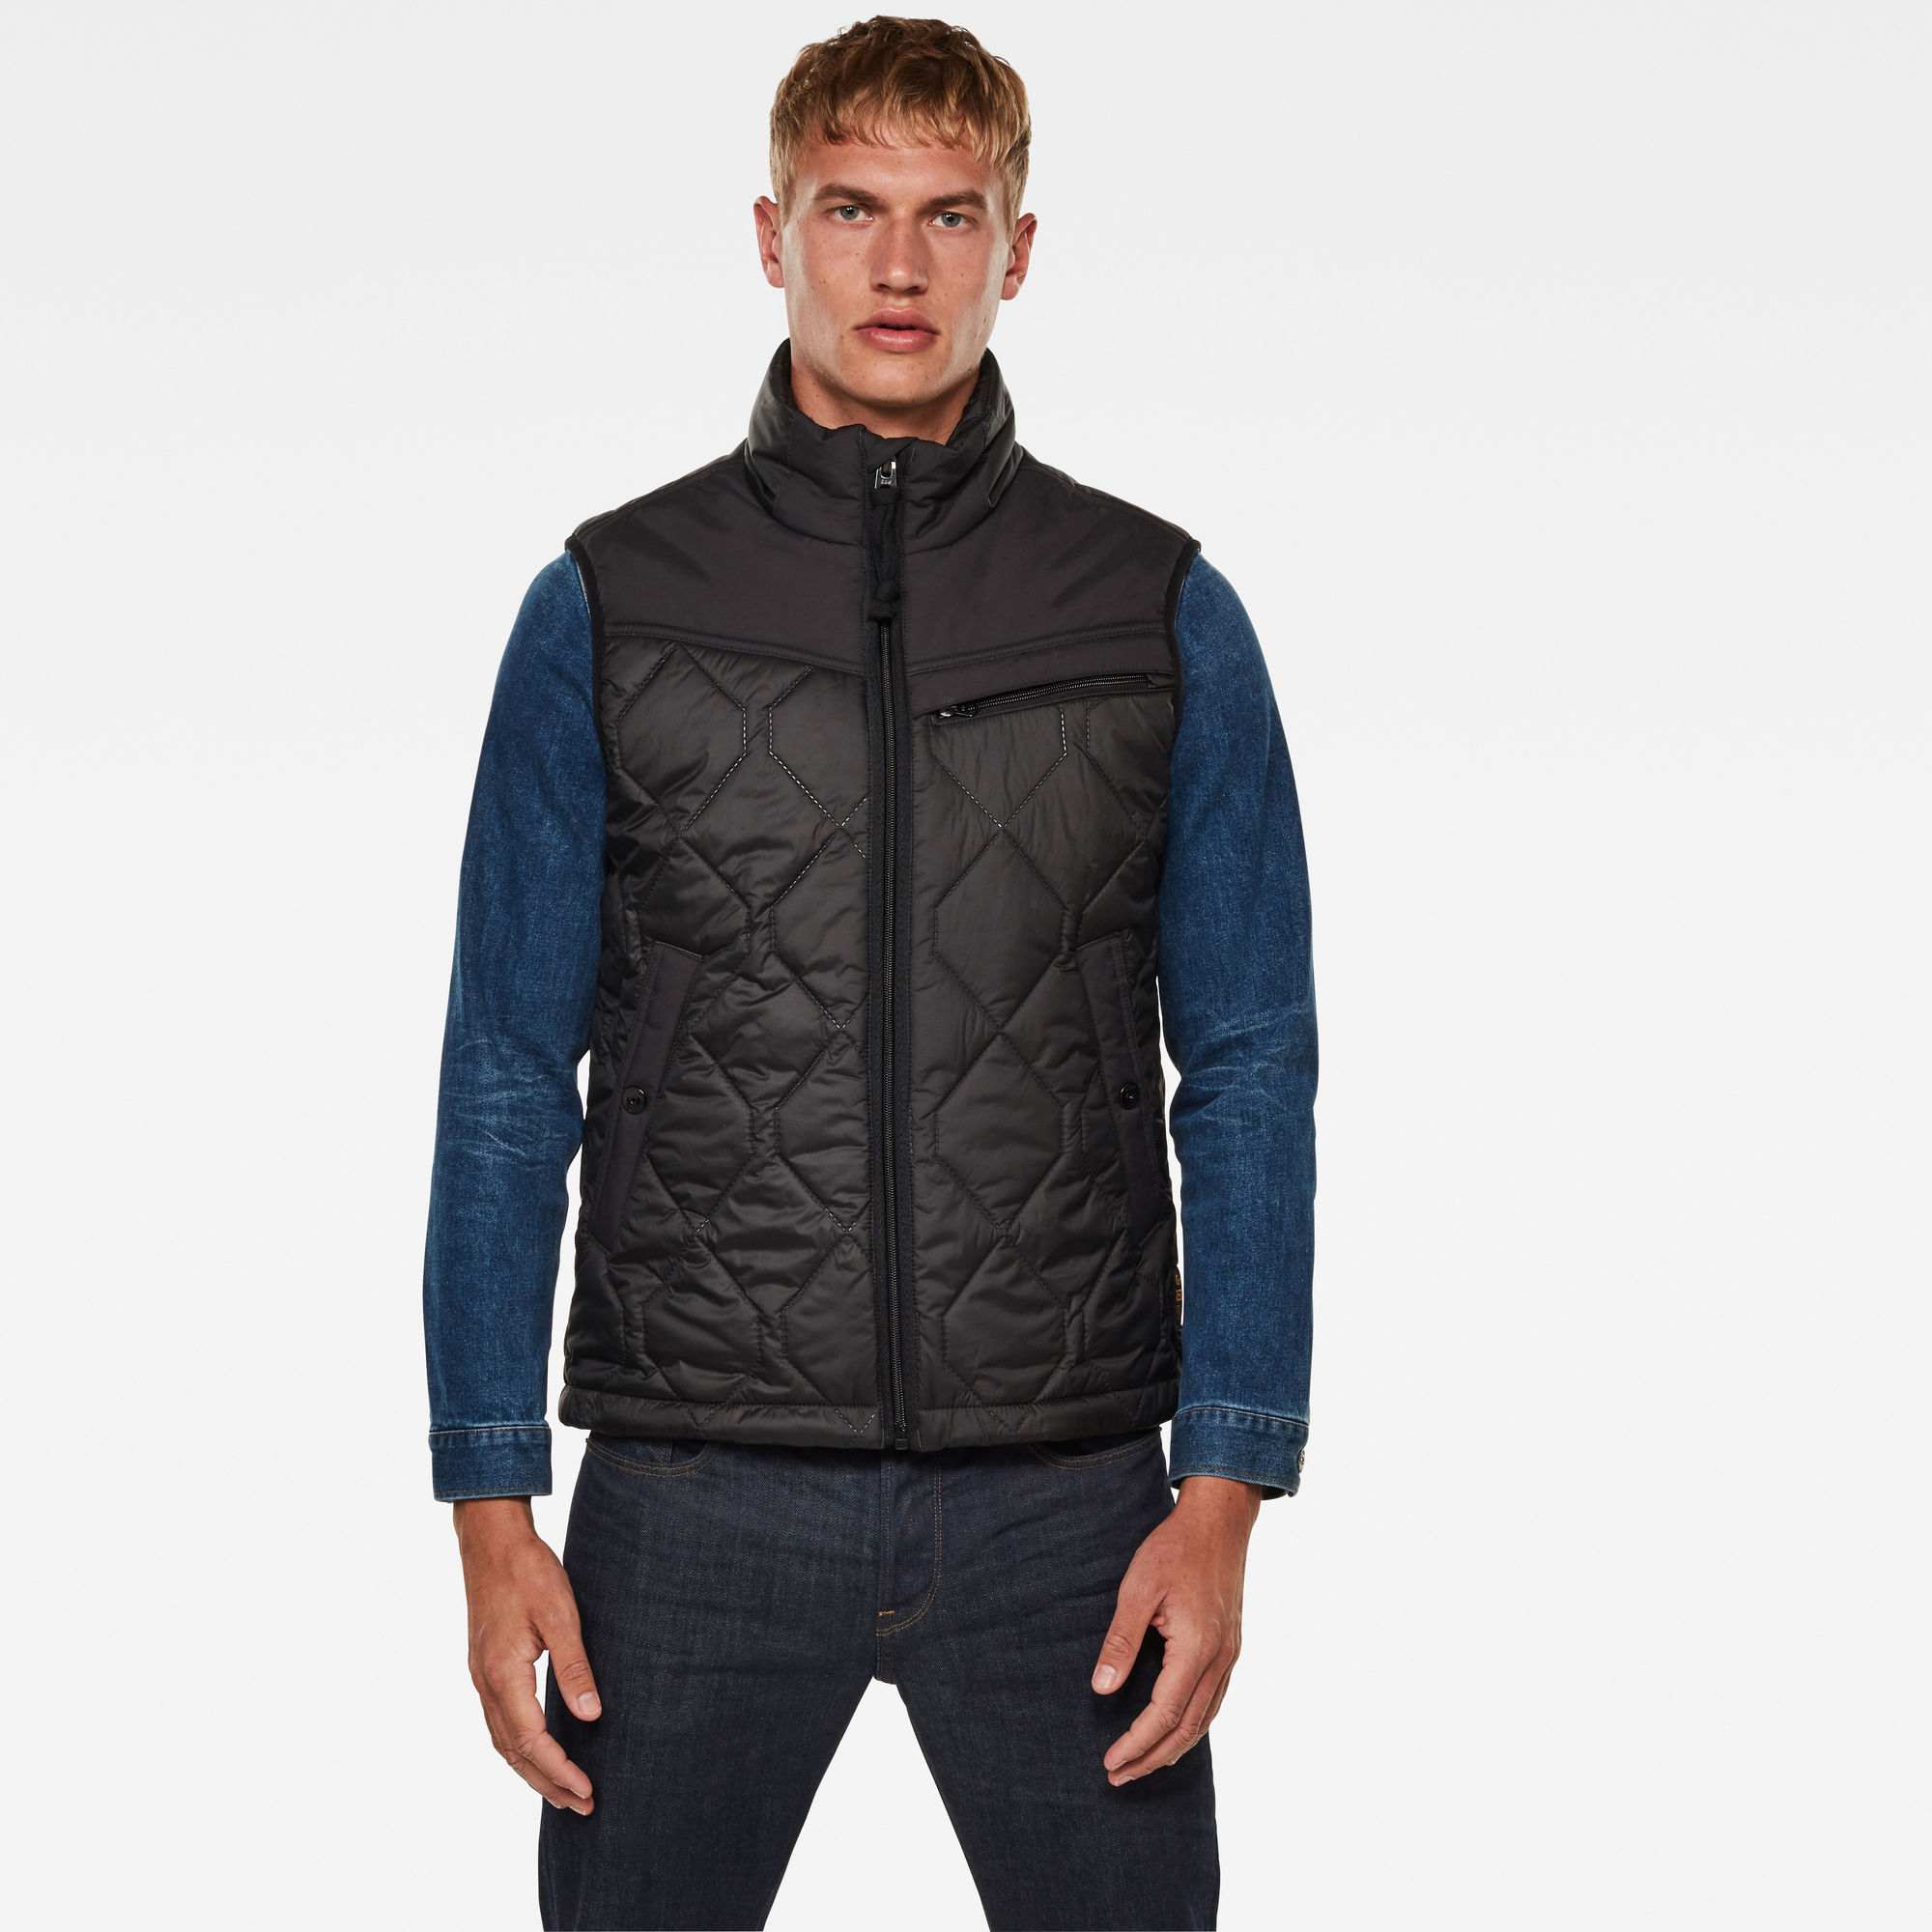 G-Star RAW Hombre Chaleco Attacc Heatseal